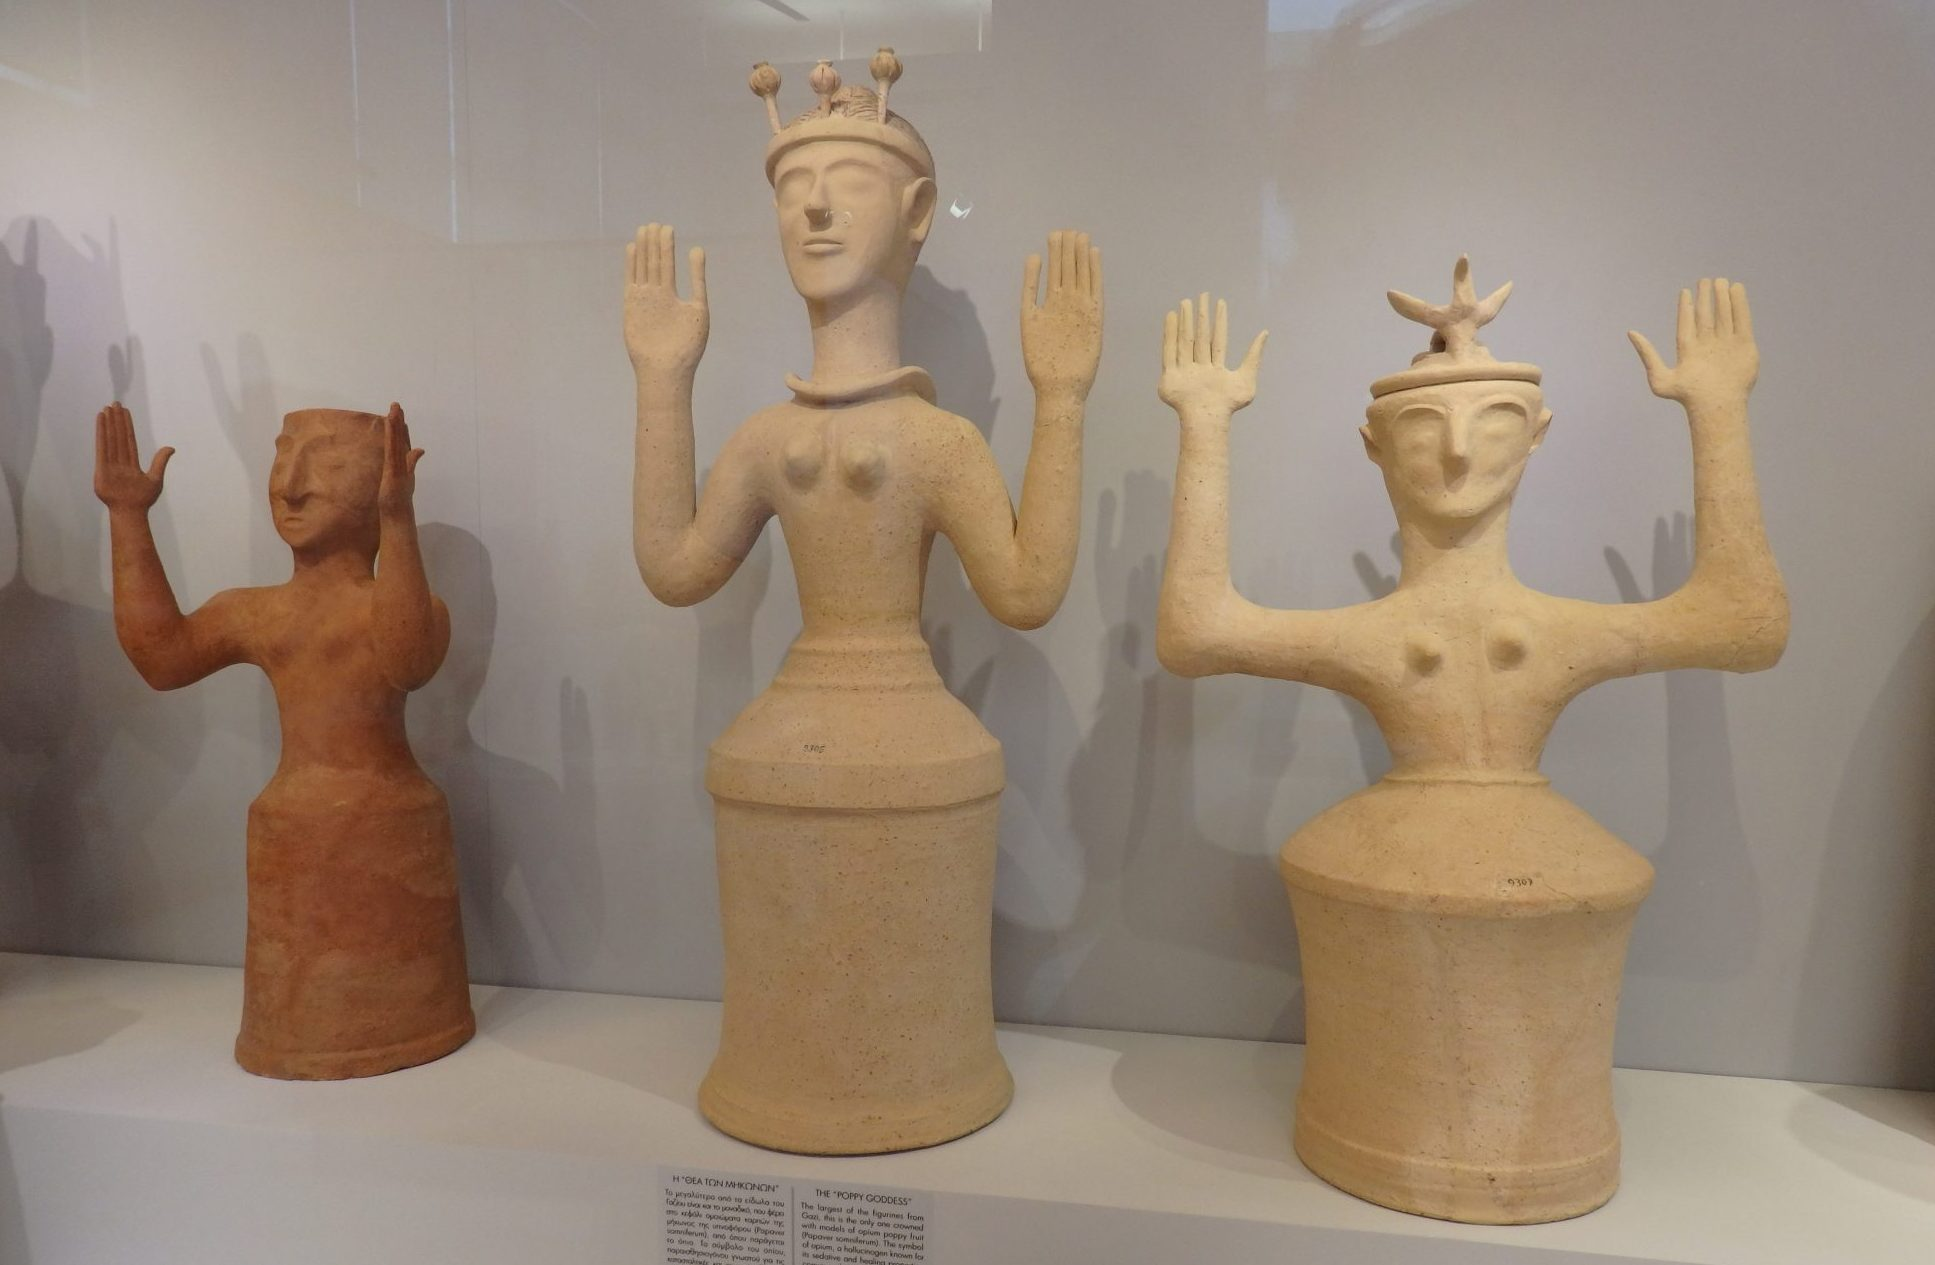 Goddess figurines from 1300-1200 BCE.